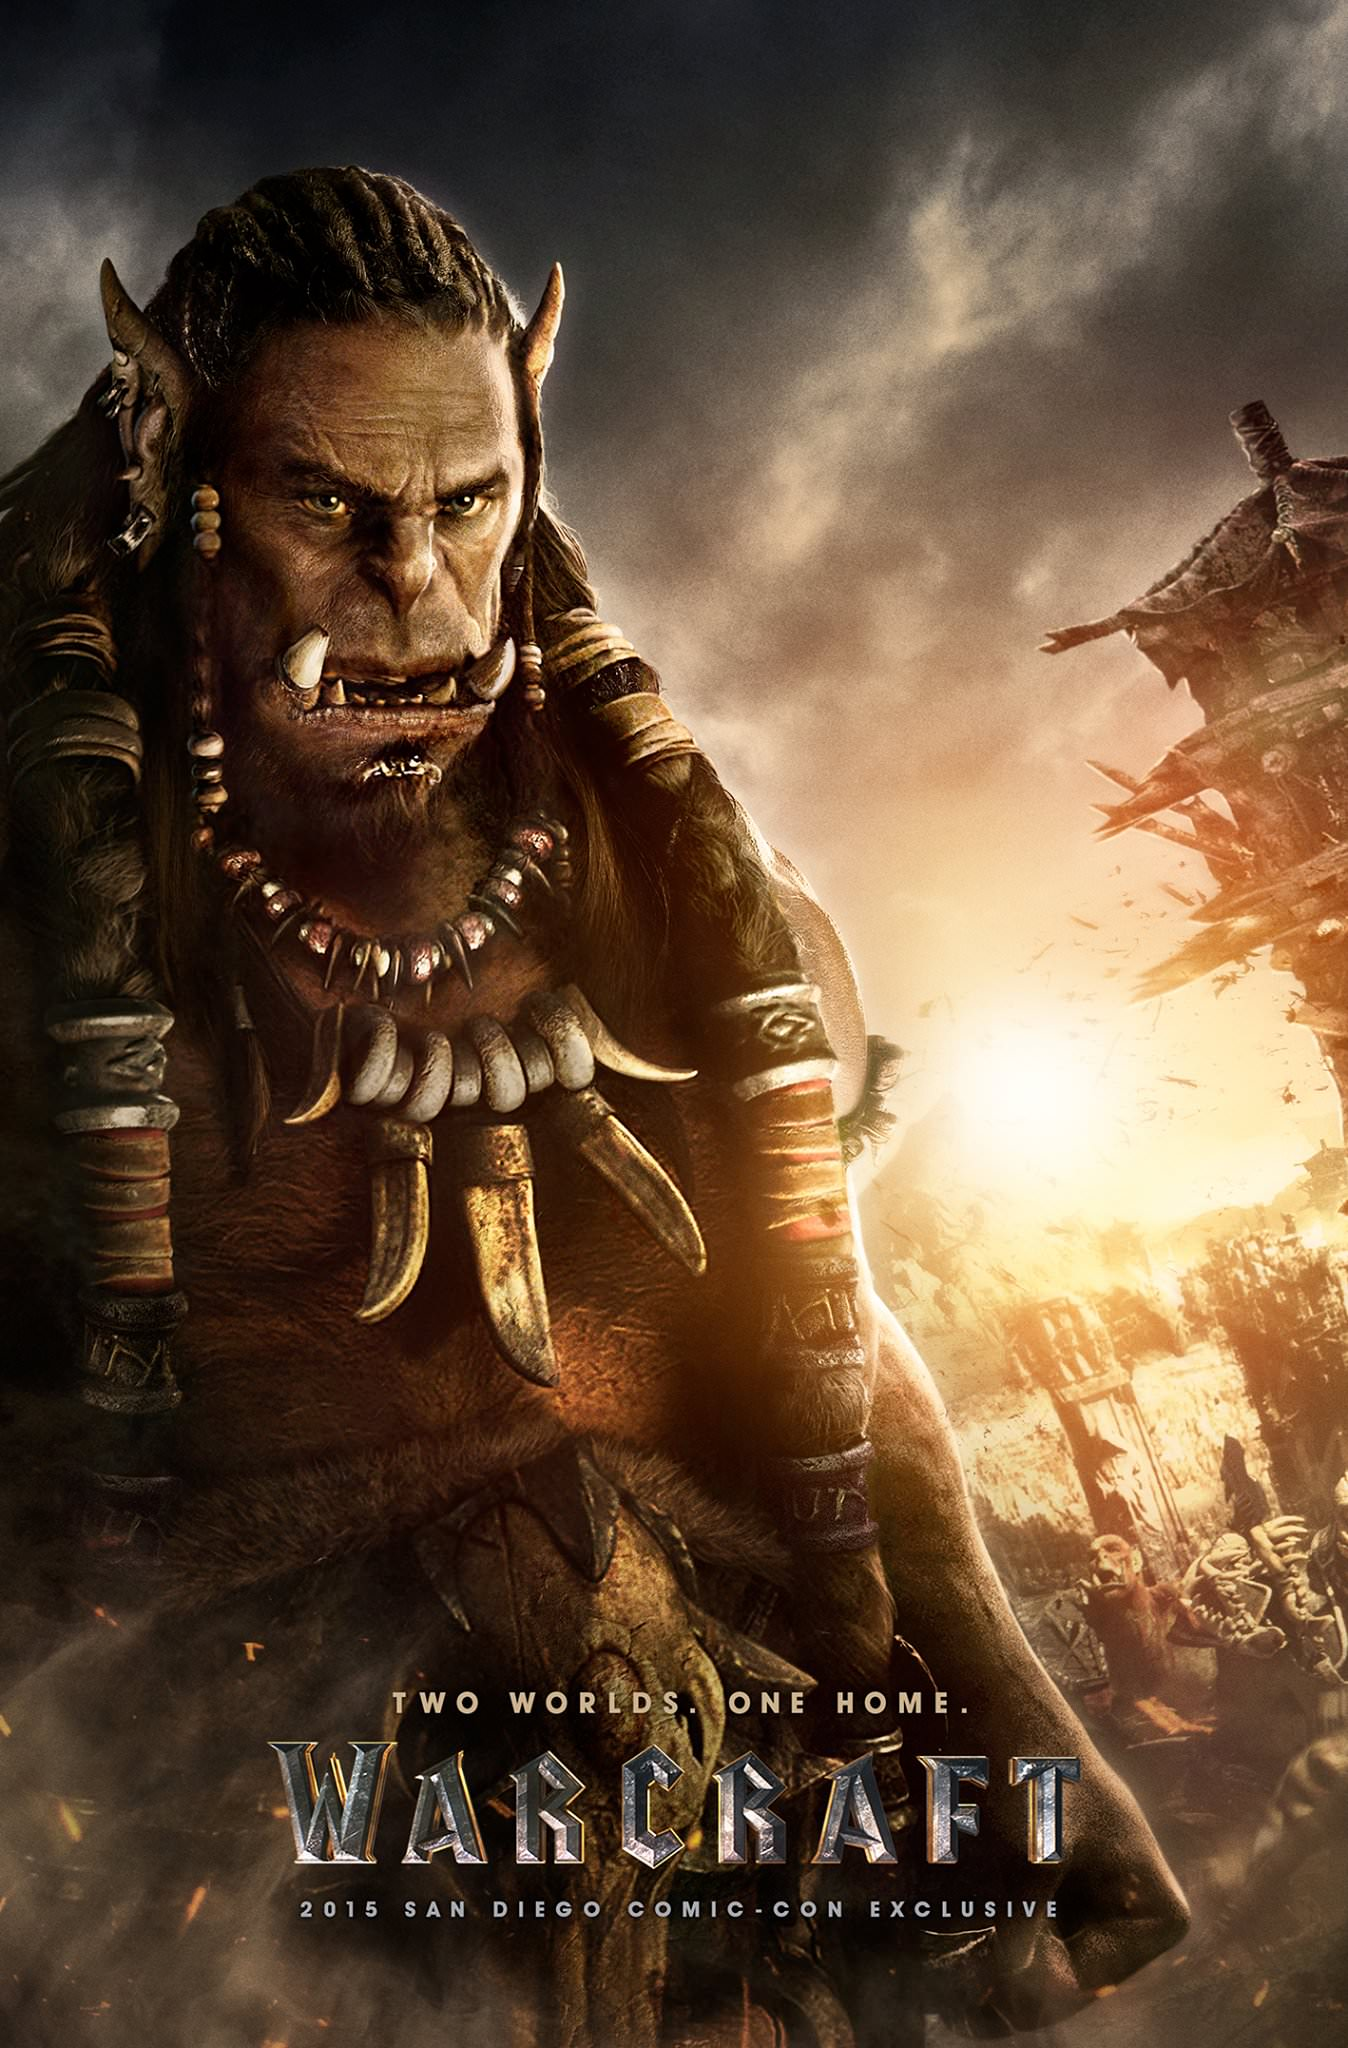 Warcraft Posters Give Us First Look At Main Characters 3